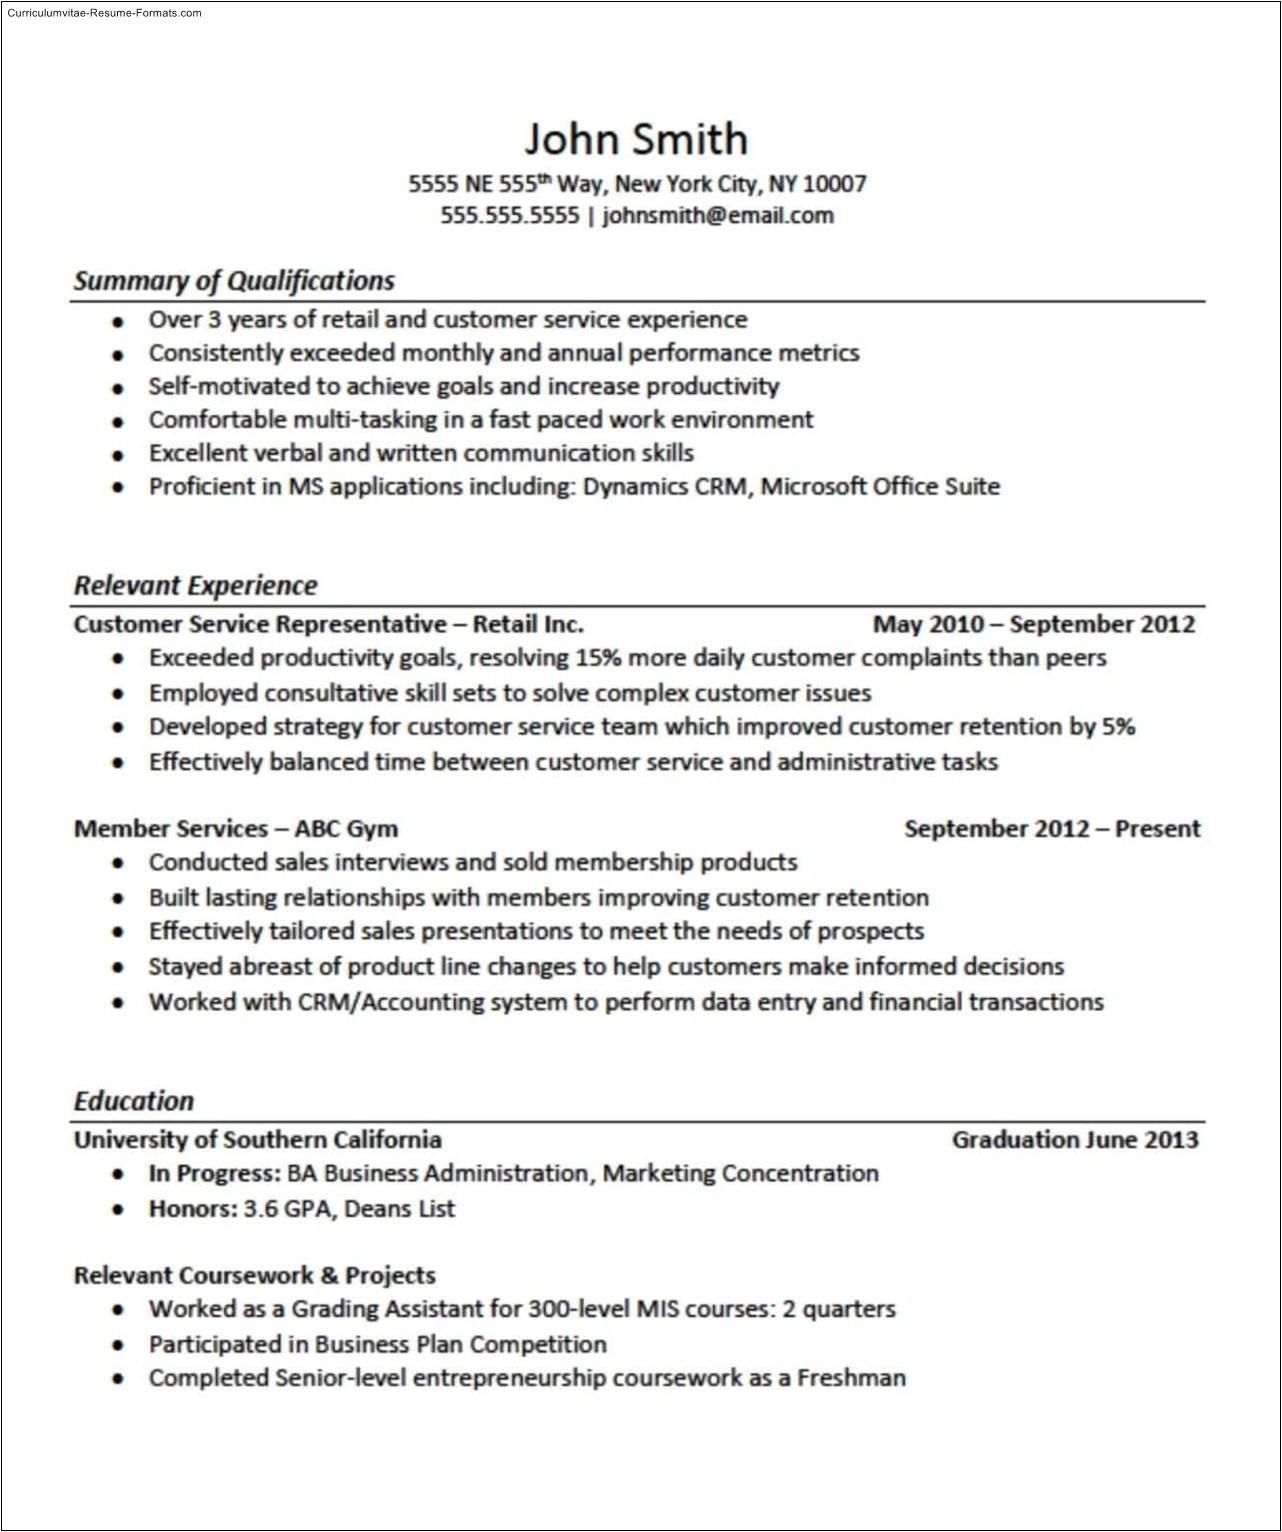 Free Job Specific Resume Templates Job Specific Resume Templates Free Samples Examples